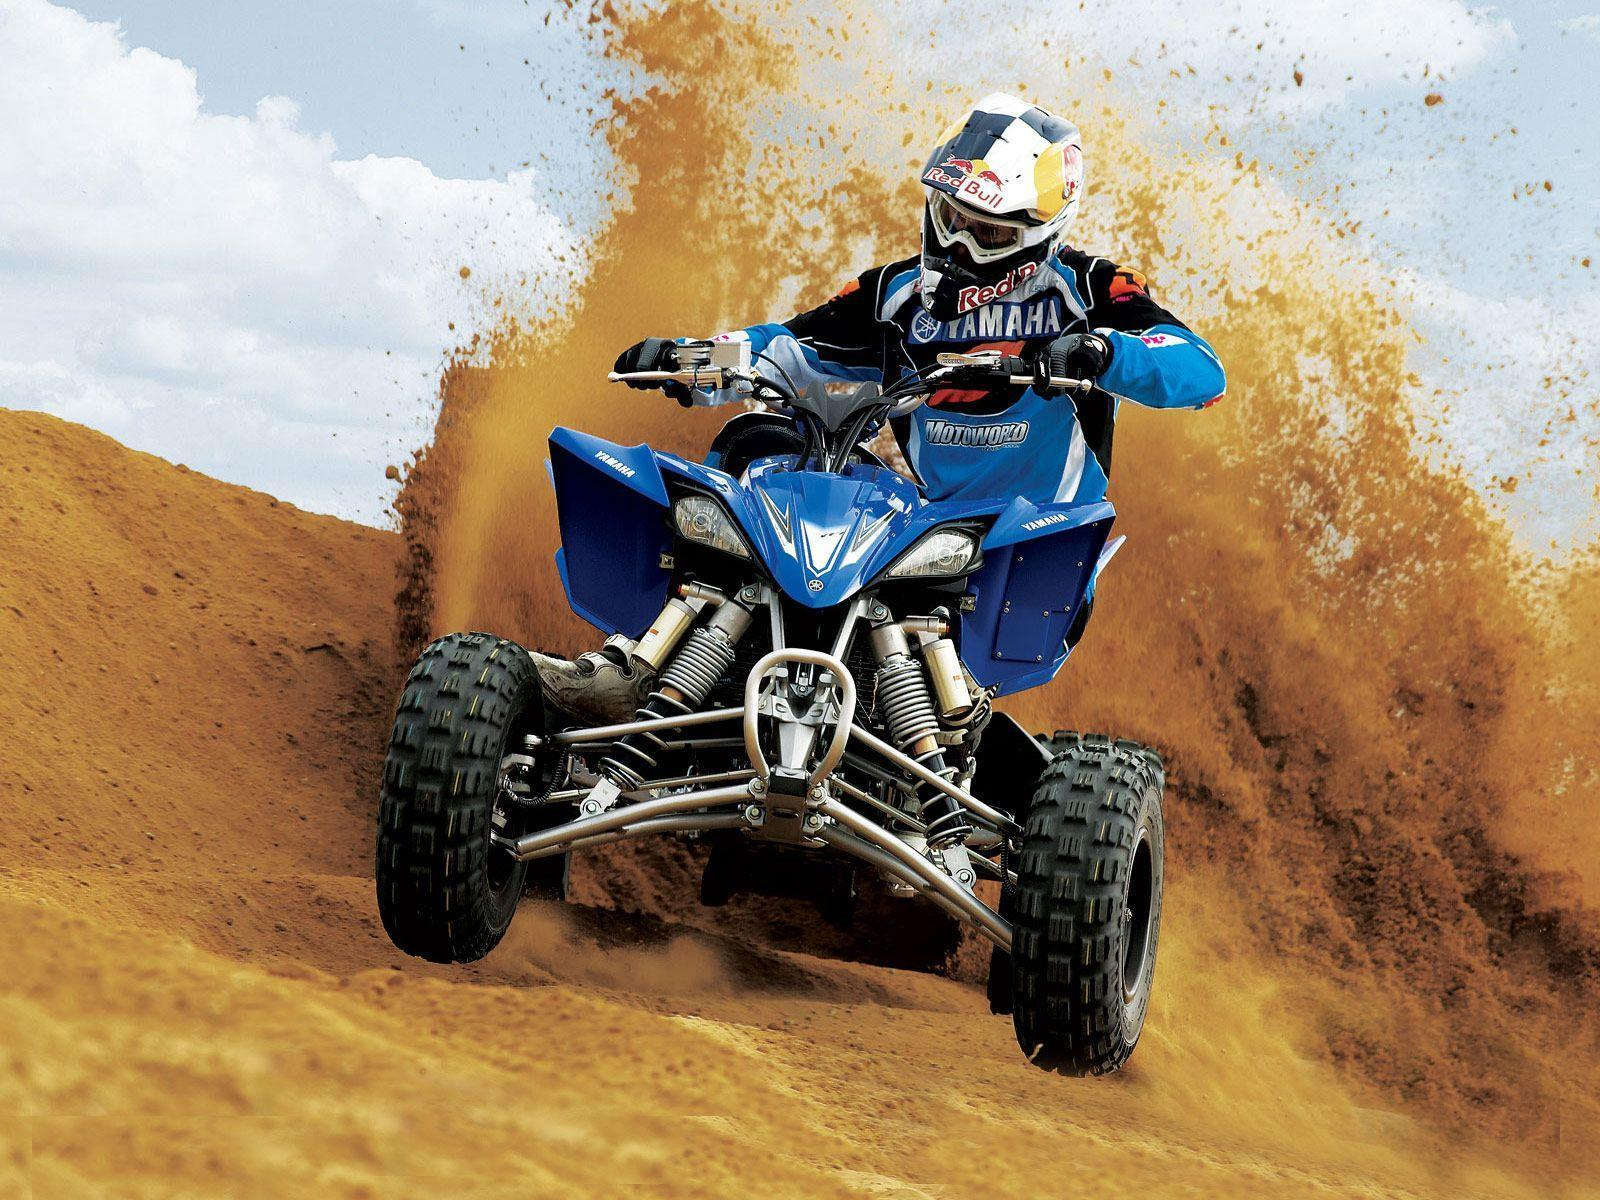 Atv Wallpapers, Atv Wallpapers For Free Download, Fungyung